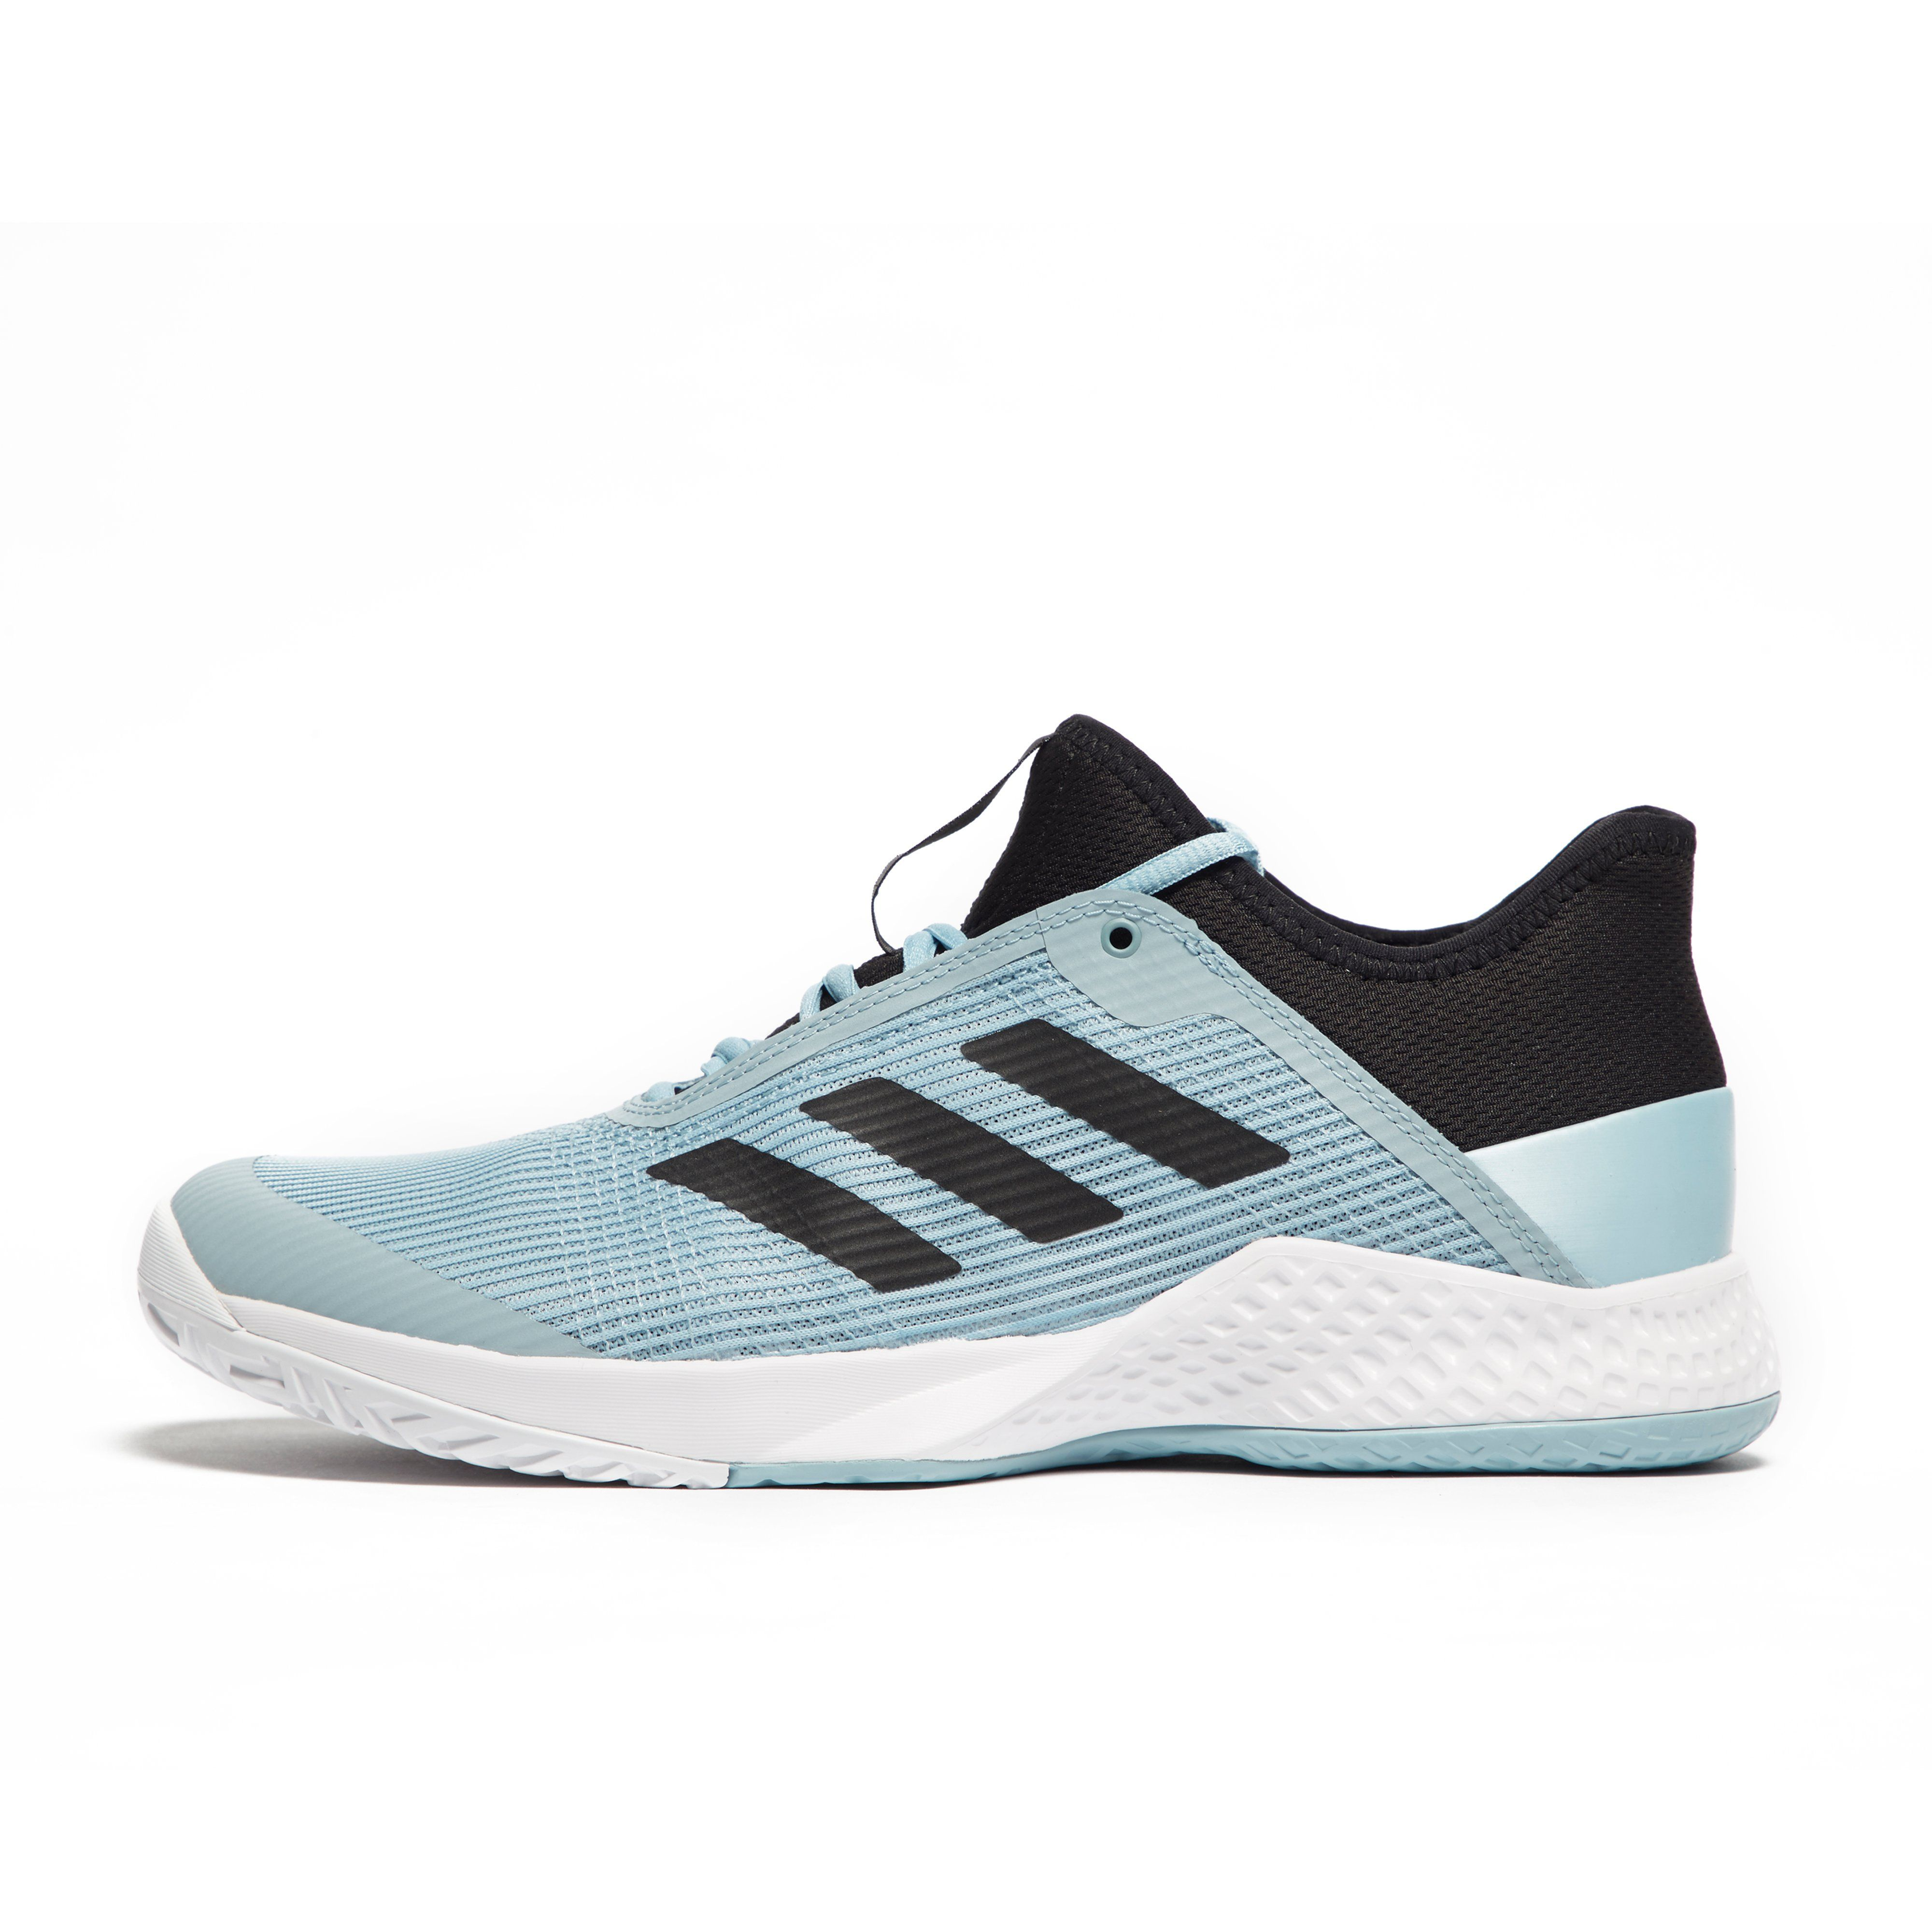 adidas Adizero Club 2.0 Men's Tennis Shoes